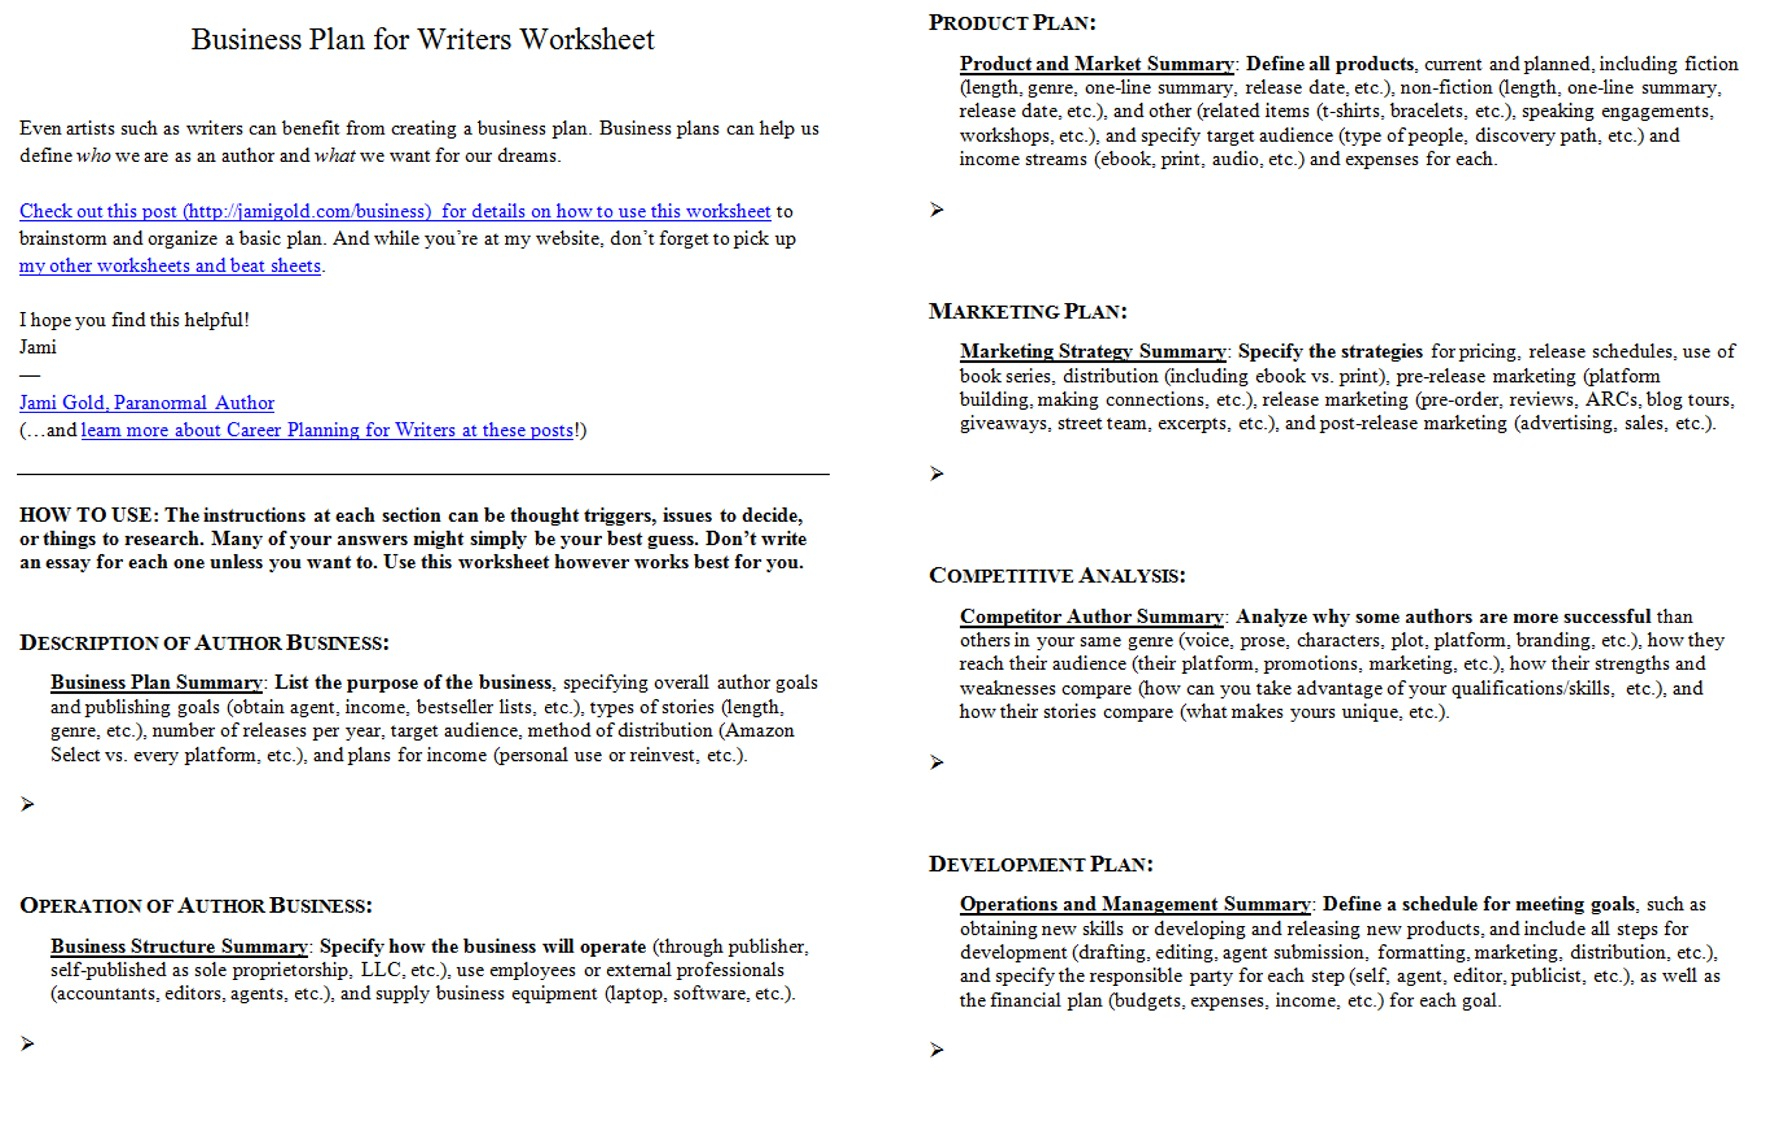 Proatmealus  Scenic Worksheets For Writers  Jami Gold Paranormal Author With Magnificent Screen Shot Of Both Pages Of The Business Plan For Writers Worksheet With Awesome Fraction Pictures Worksheet Also  Math Facts Worksheets In Addition Grammar Tenses Worksheets And Worksheets For Nursery Class Maths As Well As Long E Vowel Sound Worksheets Additionally Math Worksheets Slope From Jamigoldcom With Proatmealus  Magnificent Worksheets For Writers  Jami Gold Paranormal Author With Awesome Screen Shot Of Both Pages Of The Business Plan For Writers Worksheet And Scenic Fraction Pictures Worksheet Also  Math Facts Worksheets In Addition Grammar Tenses Worksheets From Jamigoldcom